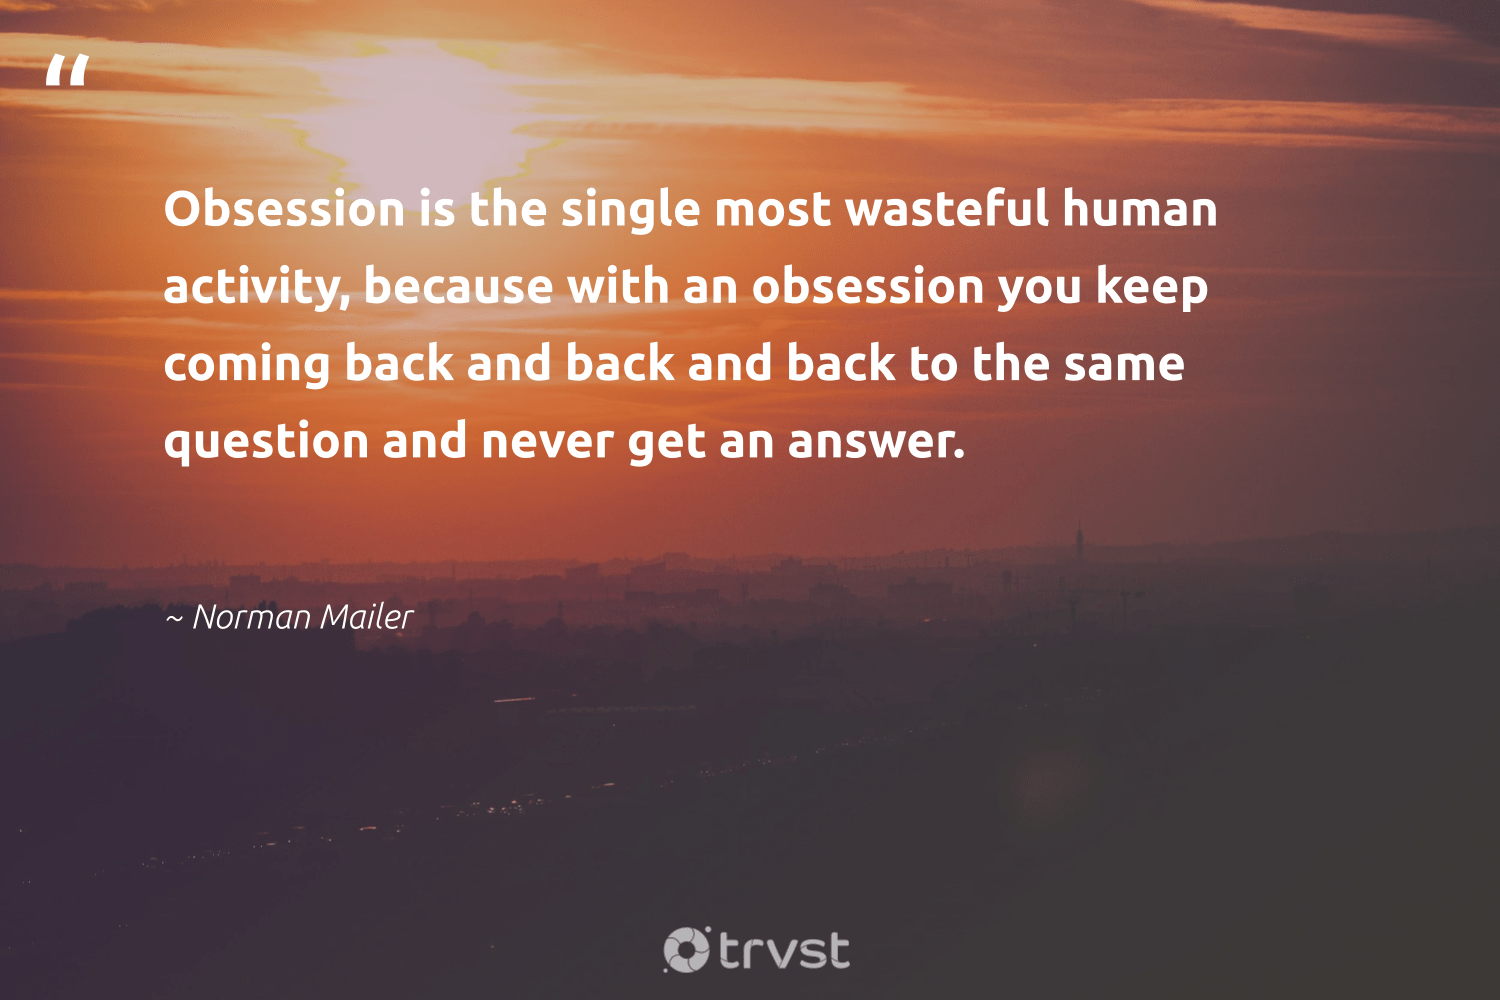 """Obsession is the single most wasteful human activity, because with an obsession you keep coming back and back and back to the same question and never get an answer.""  - Norman Mailer #trvst #quotes #nevergiveup #impact #togetherwecan #dogood #mindset #planetearthfirst #changemakers #socialimpact #begreat #gogreen"